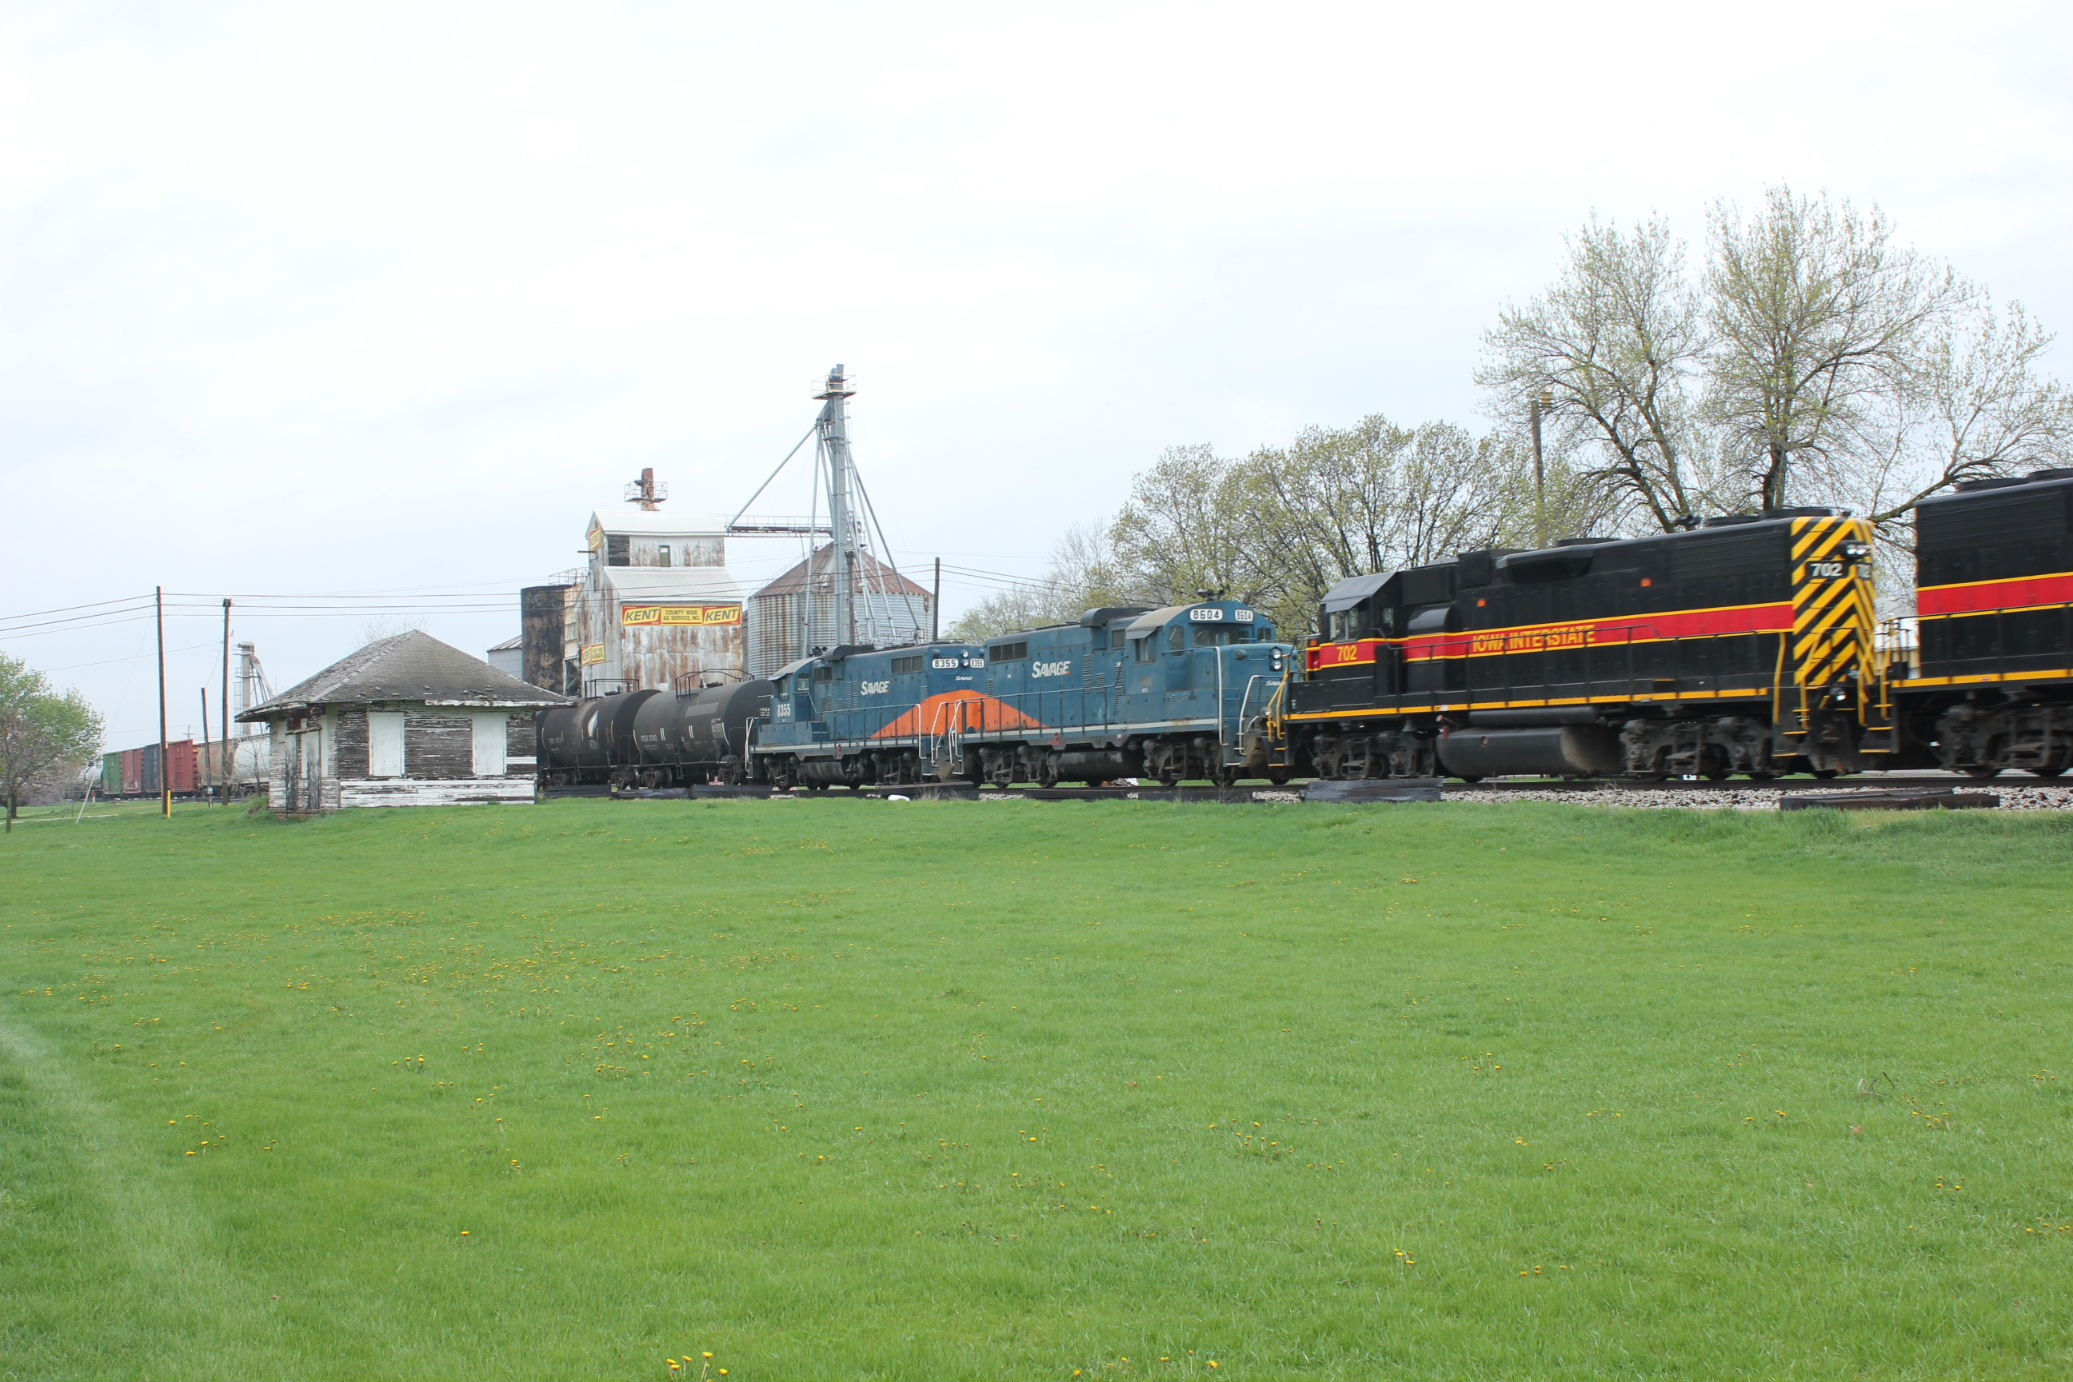 A pair of Savage geeps trailed the regular power on today's EB, May 4, 2013.